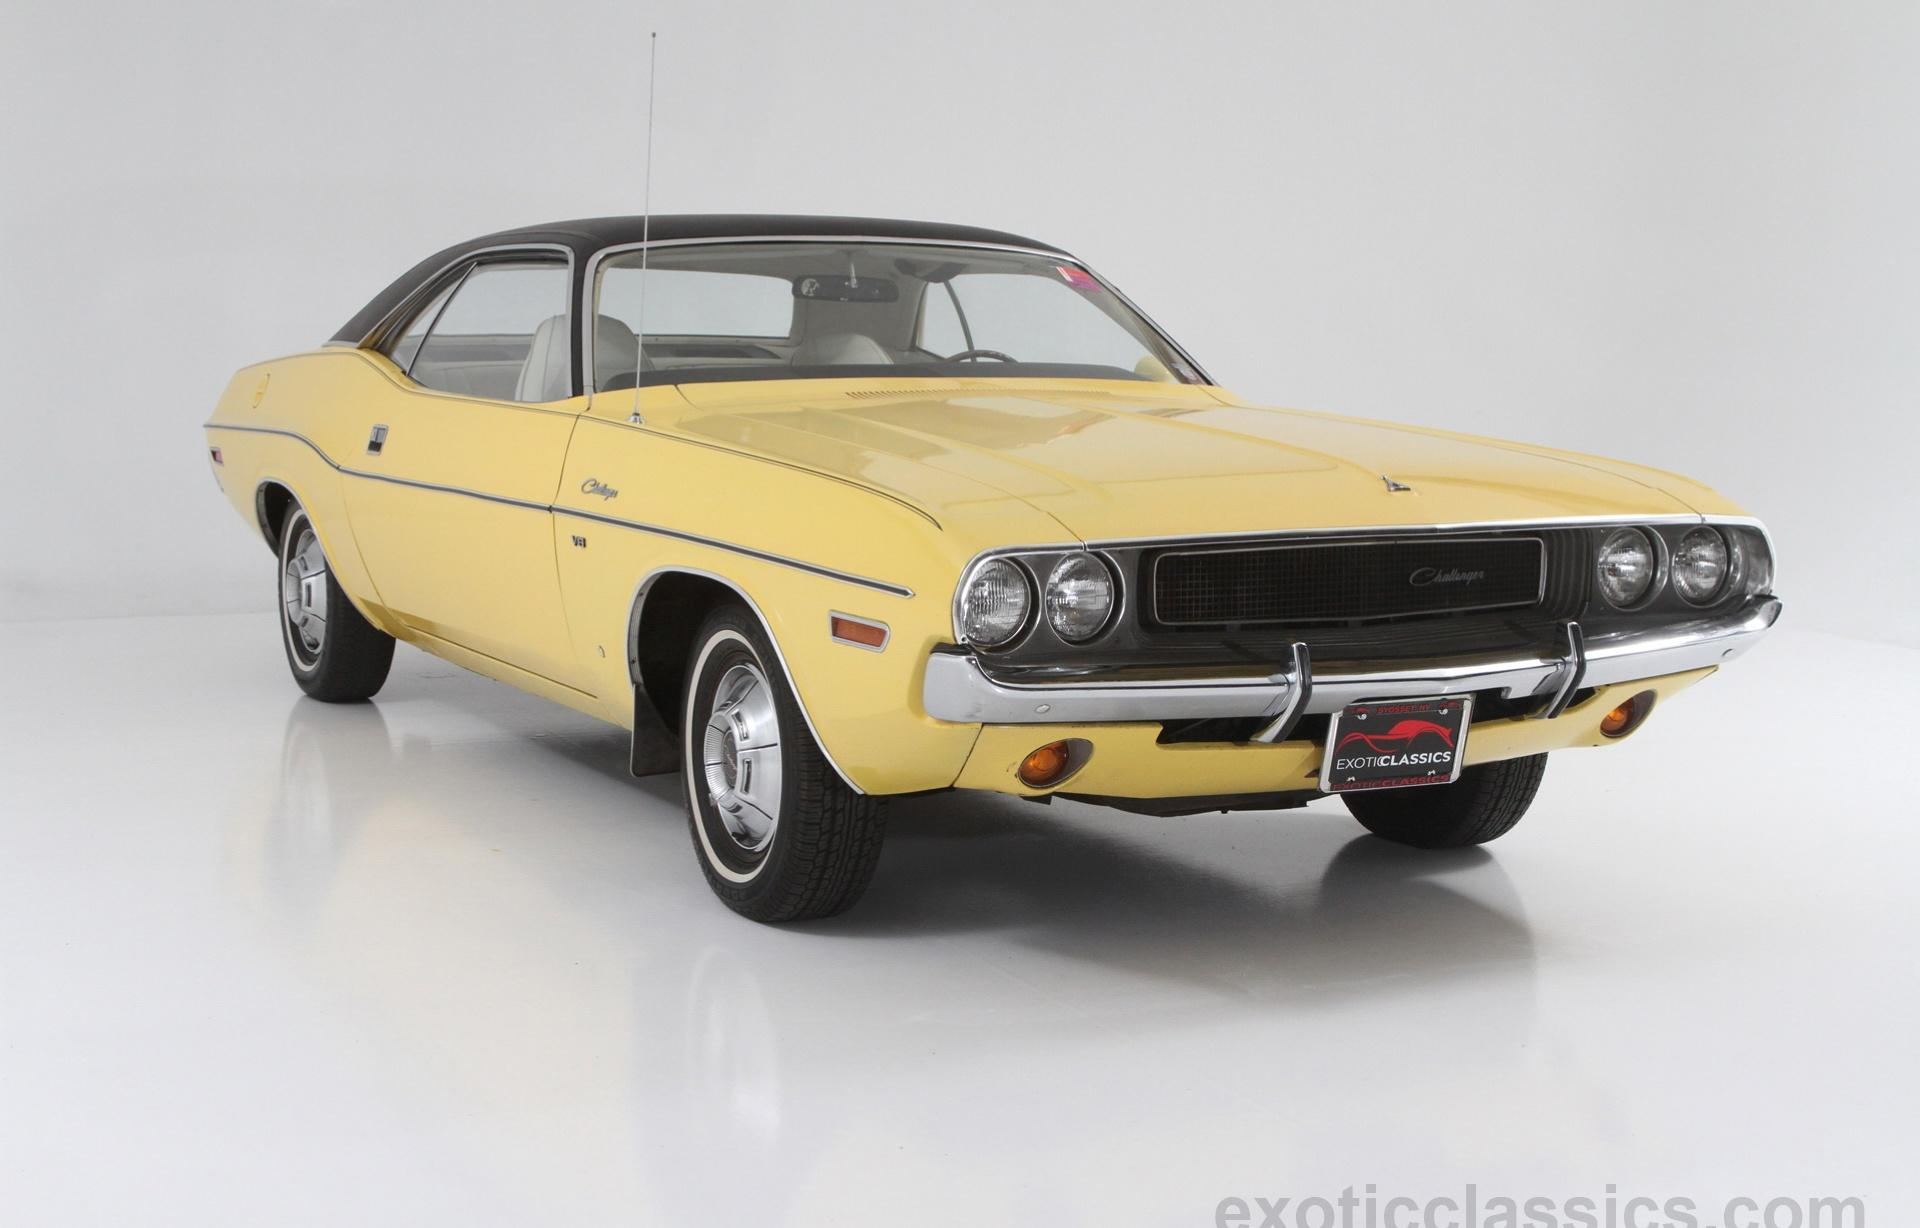 1970 Dodge Challenger Exotic Classic Car Dealership New